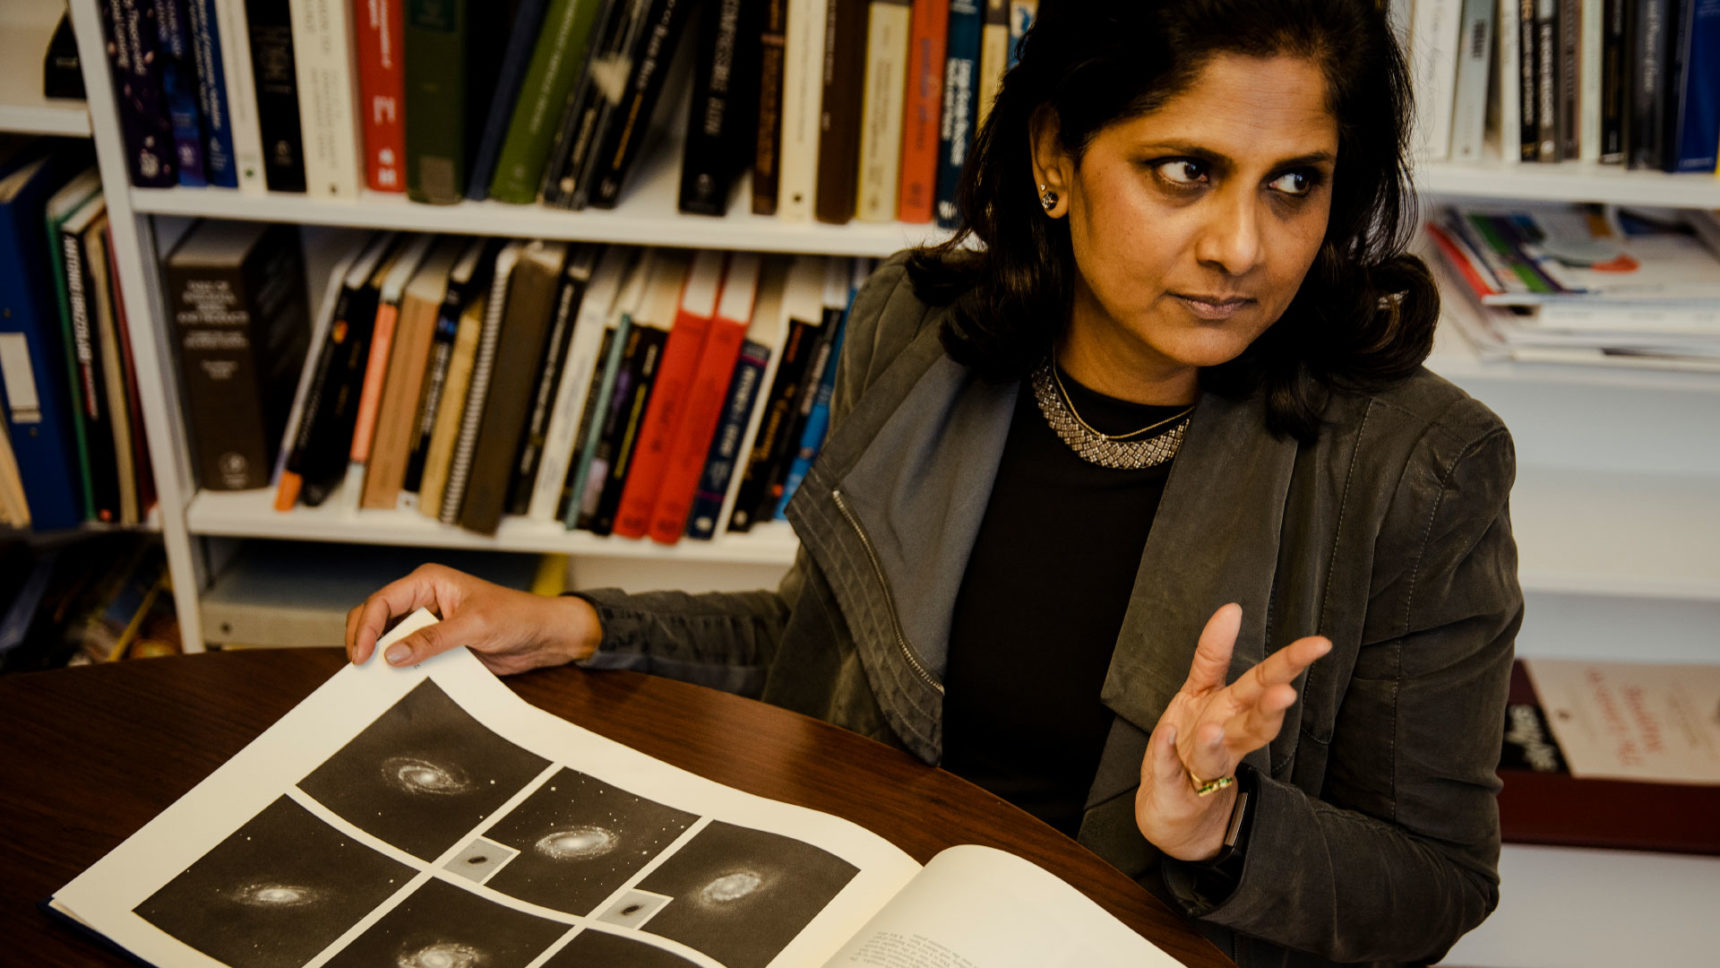 Priyamvada Natarajan explains the role of supermassive black holes in the structure and evolution of the universe.